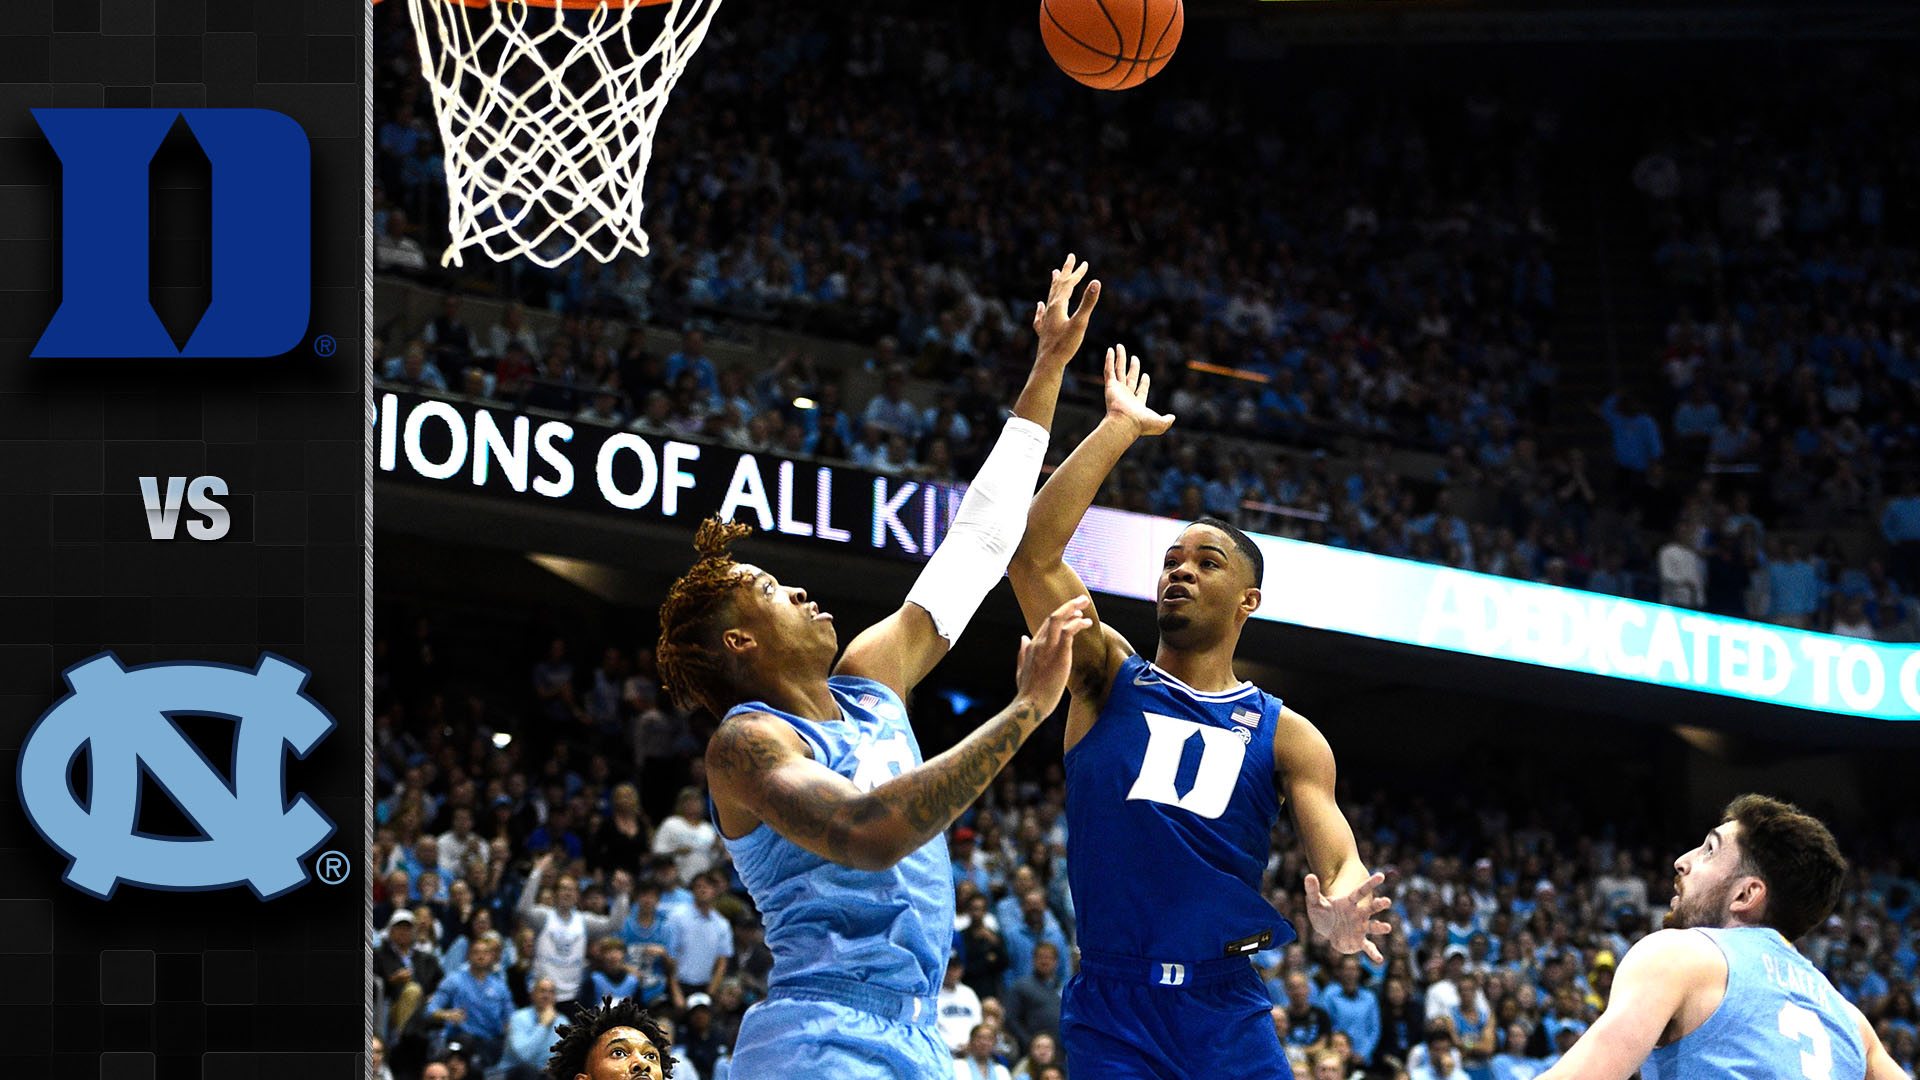 Blue Devils Win Improbable OT Thriller at Dean Dome 98-96 | Tre Jones Goes for 28